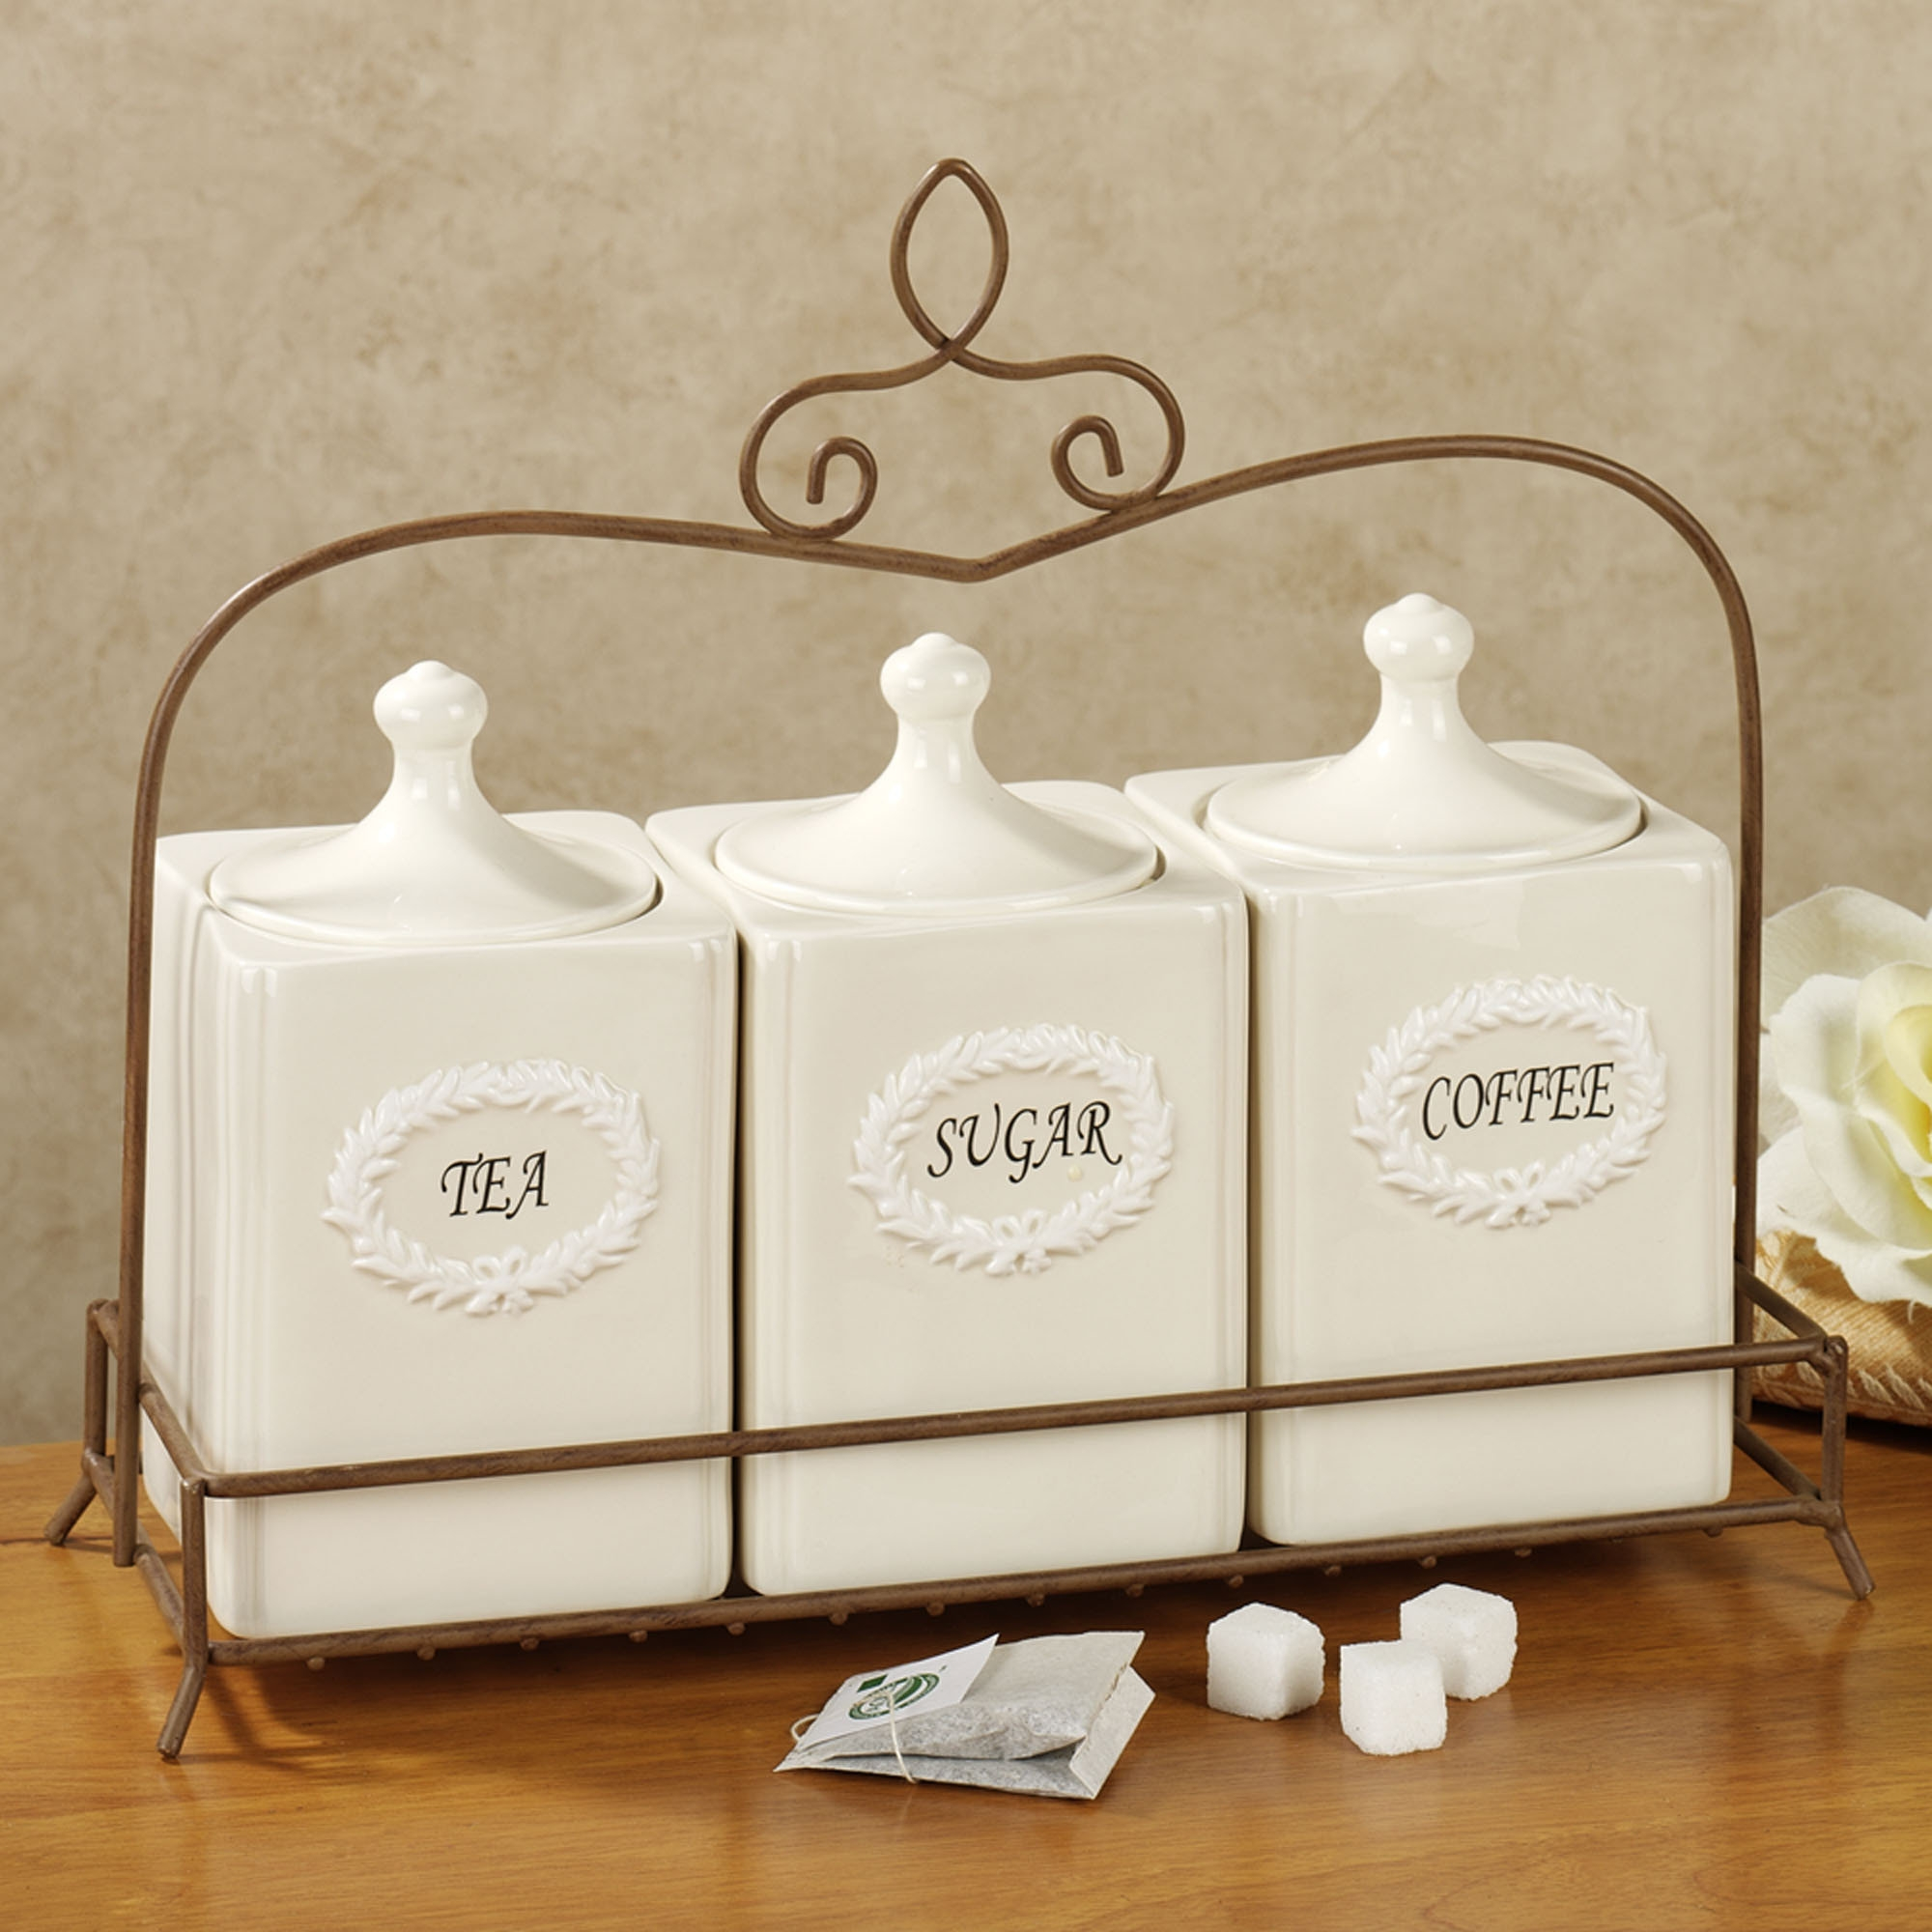 Cute Kitchen Canister Sets Cute Kitchen Canister Sets ideas interesting kitchen canisters for kitchen accessories ideas 2000 X 2000